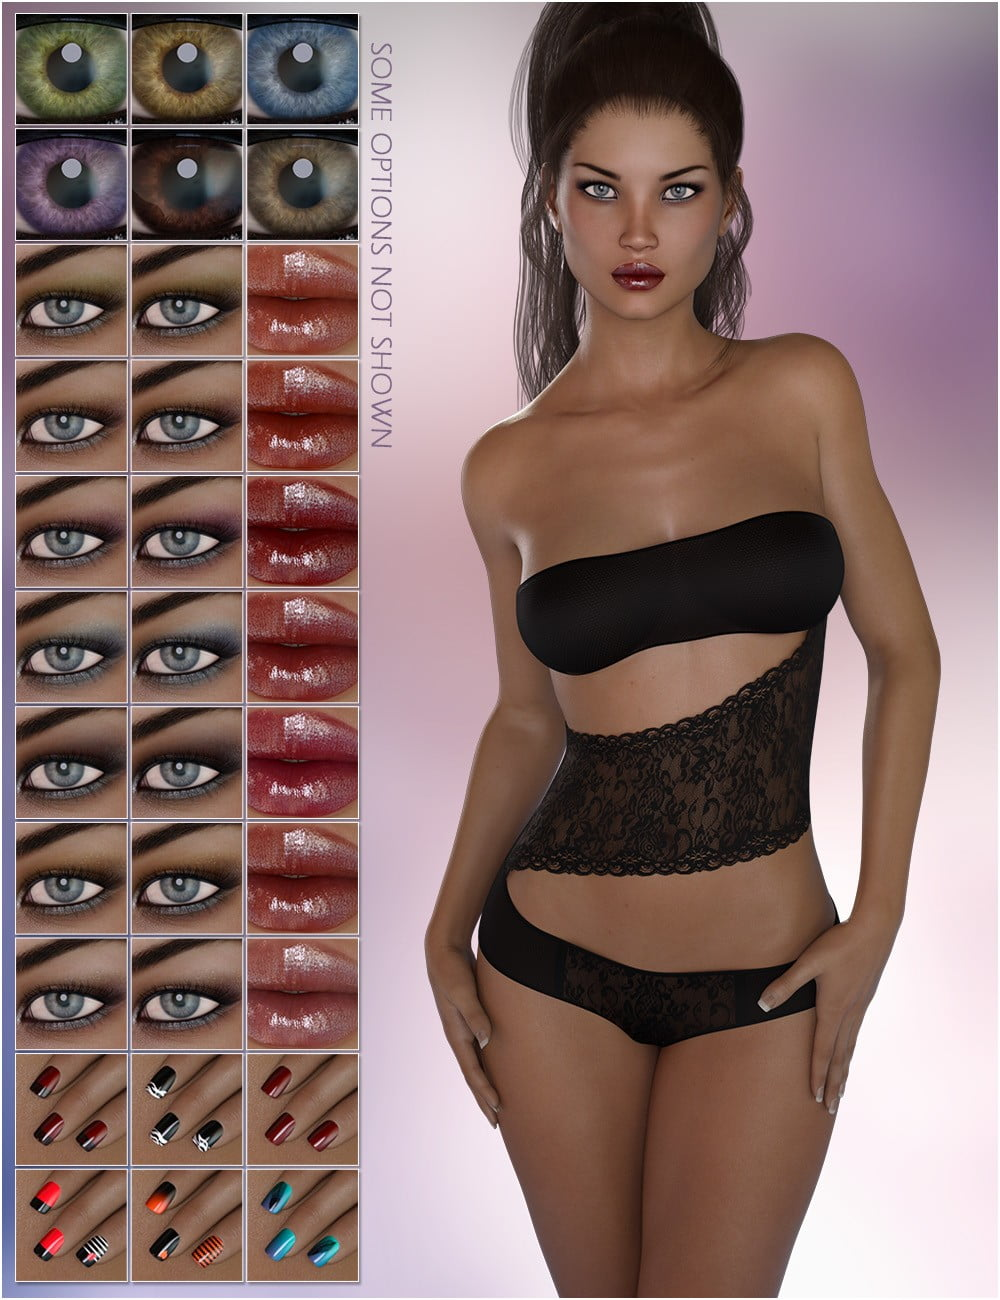 03-fwsa-zoe-hd-for-victoria-7-and-lf-tantalizing-undergarment-daz3d